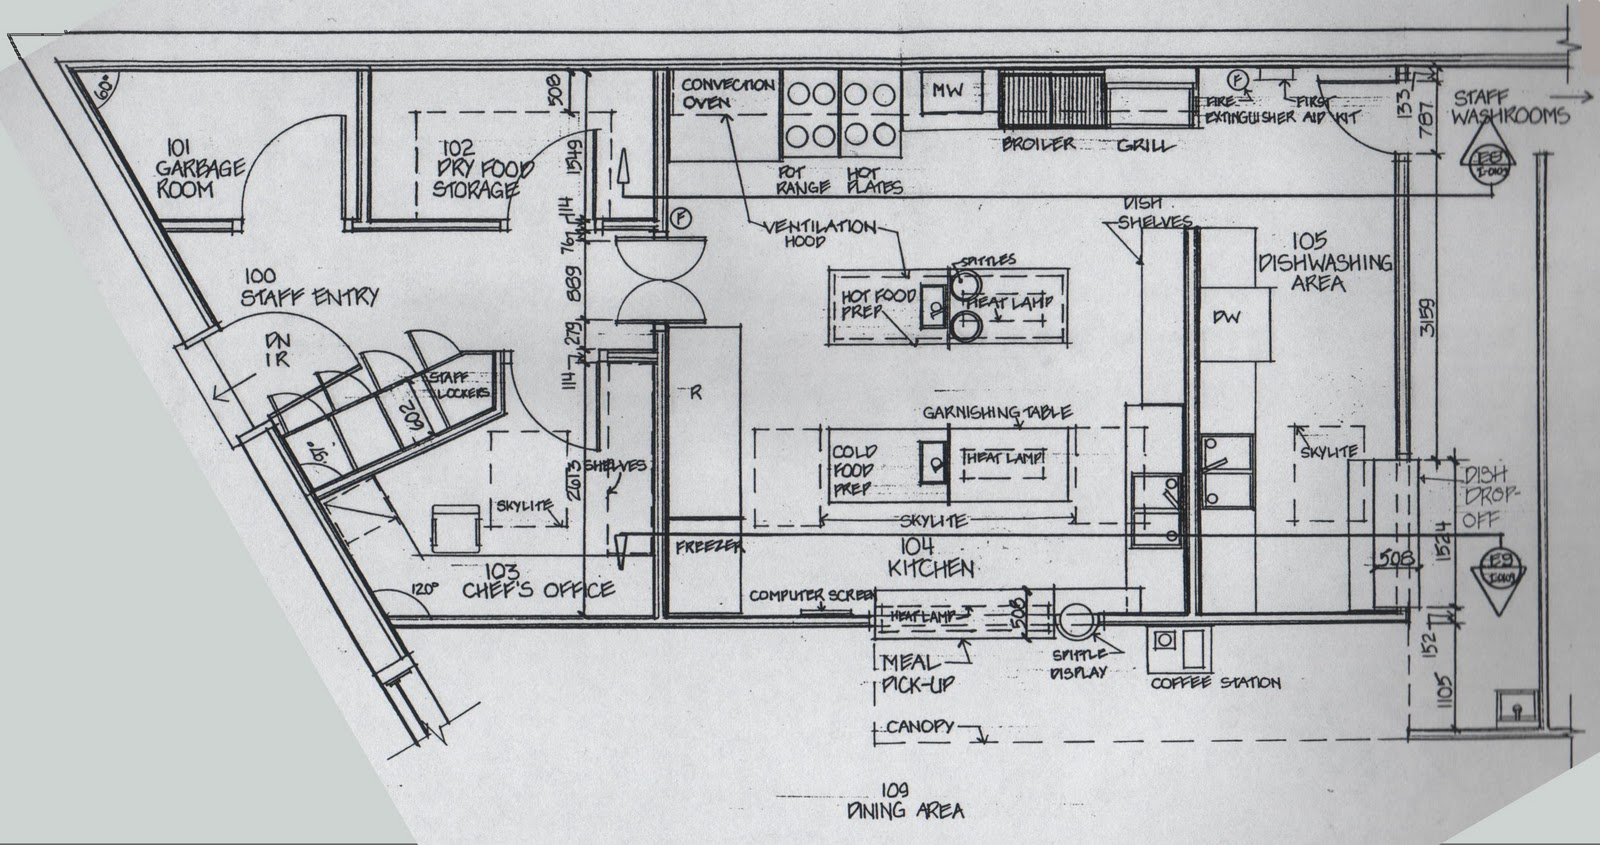 Restaurant kitchen blueprint afreakatheart for Restaurant layout